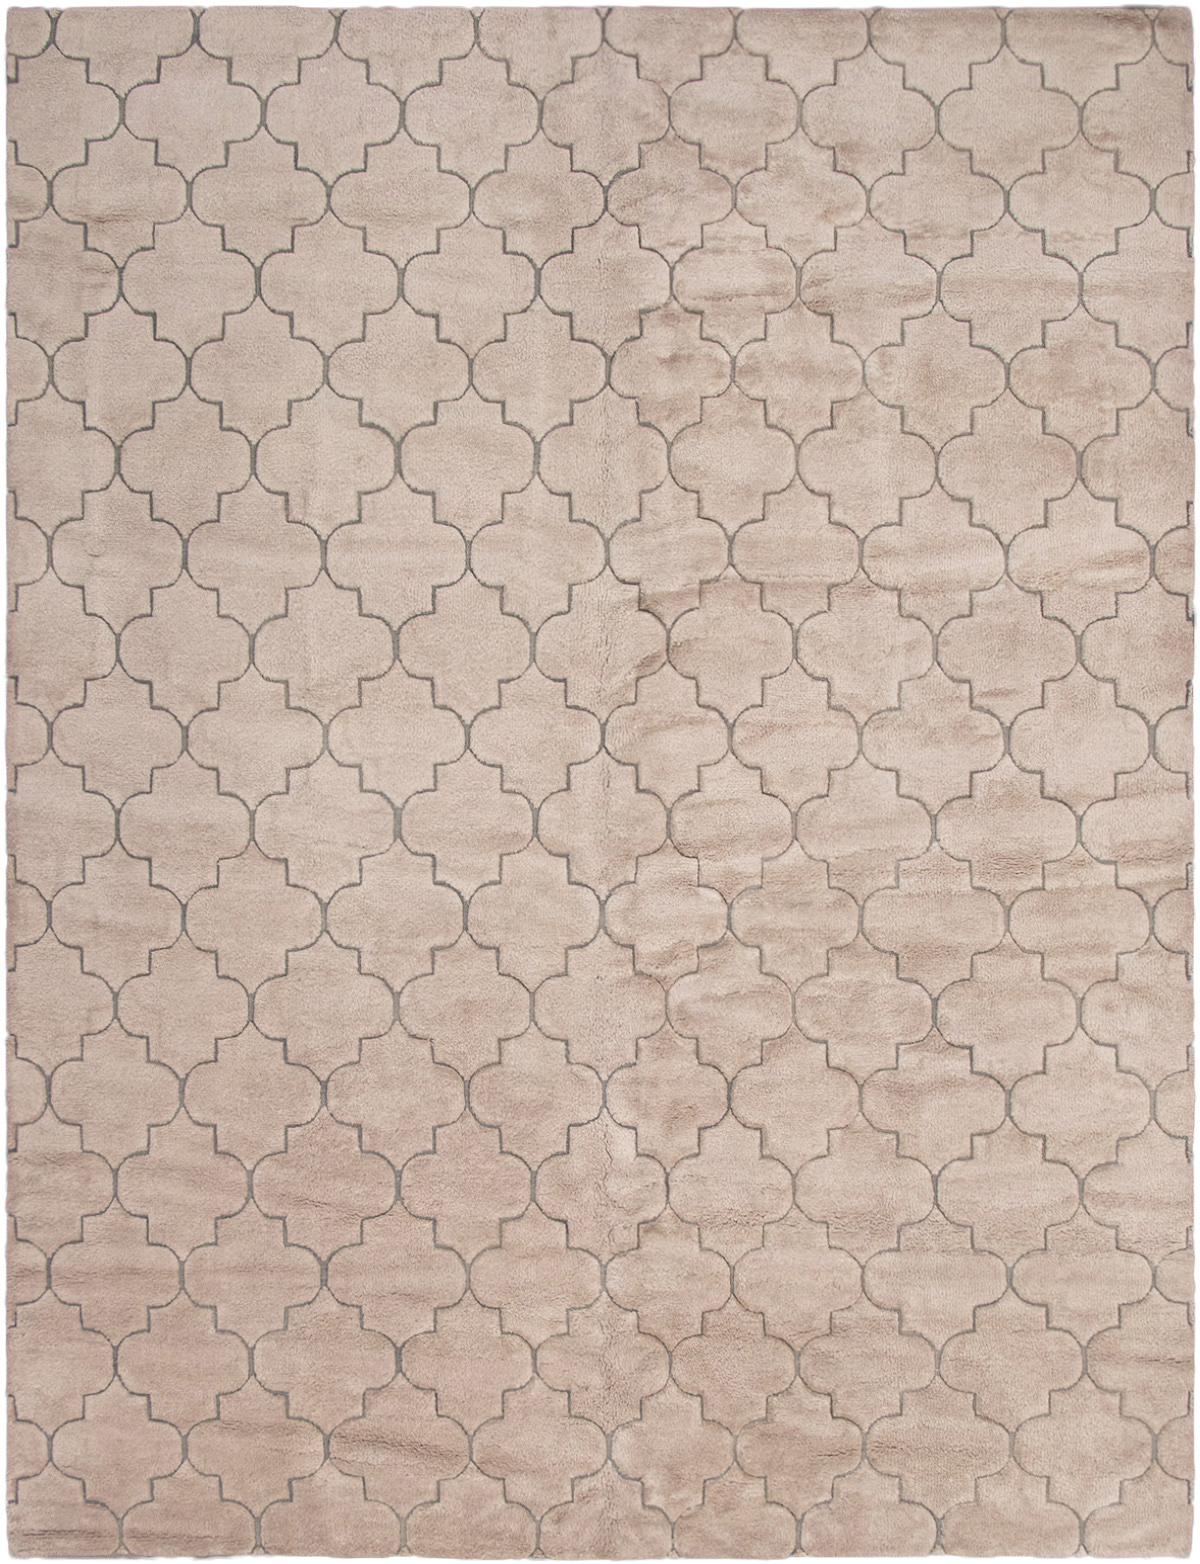 """Hand-knotted Arlequin Tan Wool Rug 10'4"""" x 13'8"""" Size: 10'4"""" x 13'8"""""""